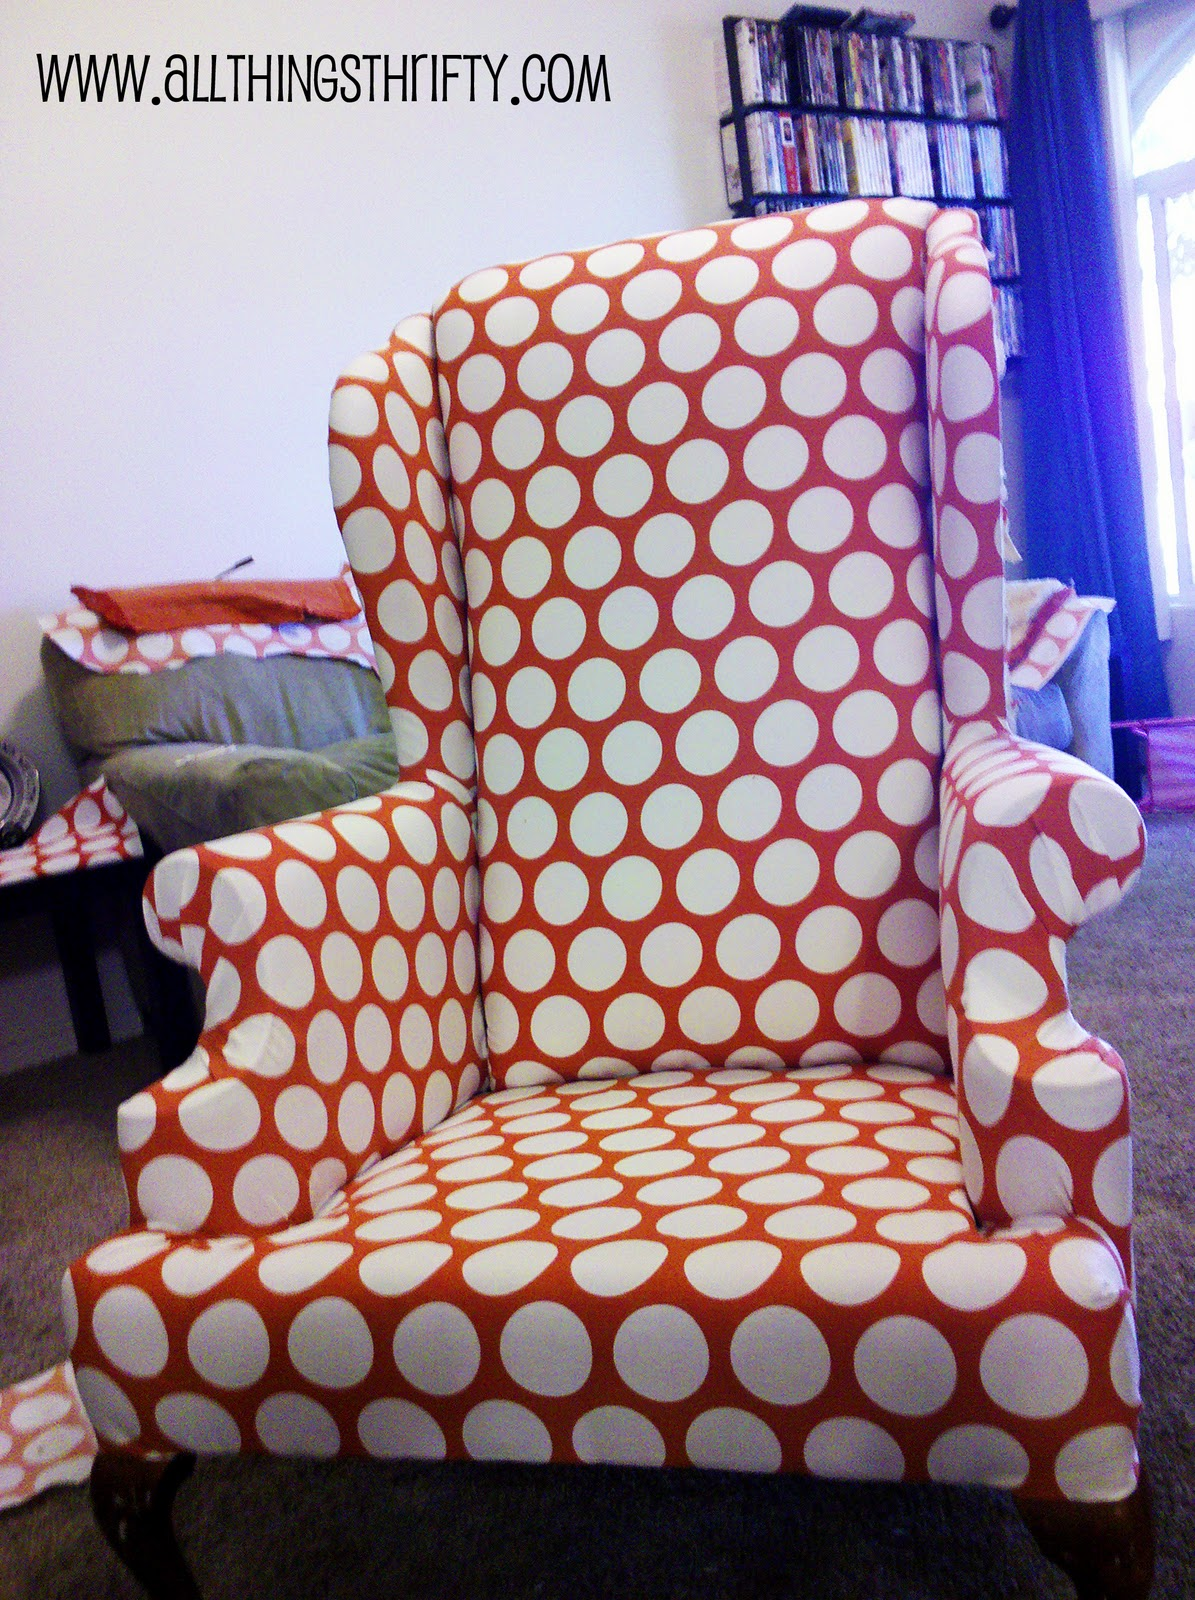 wingback chair upholstery ideas baby sleeper all things thriftys top 10 tips radica